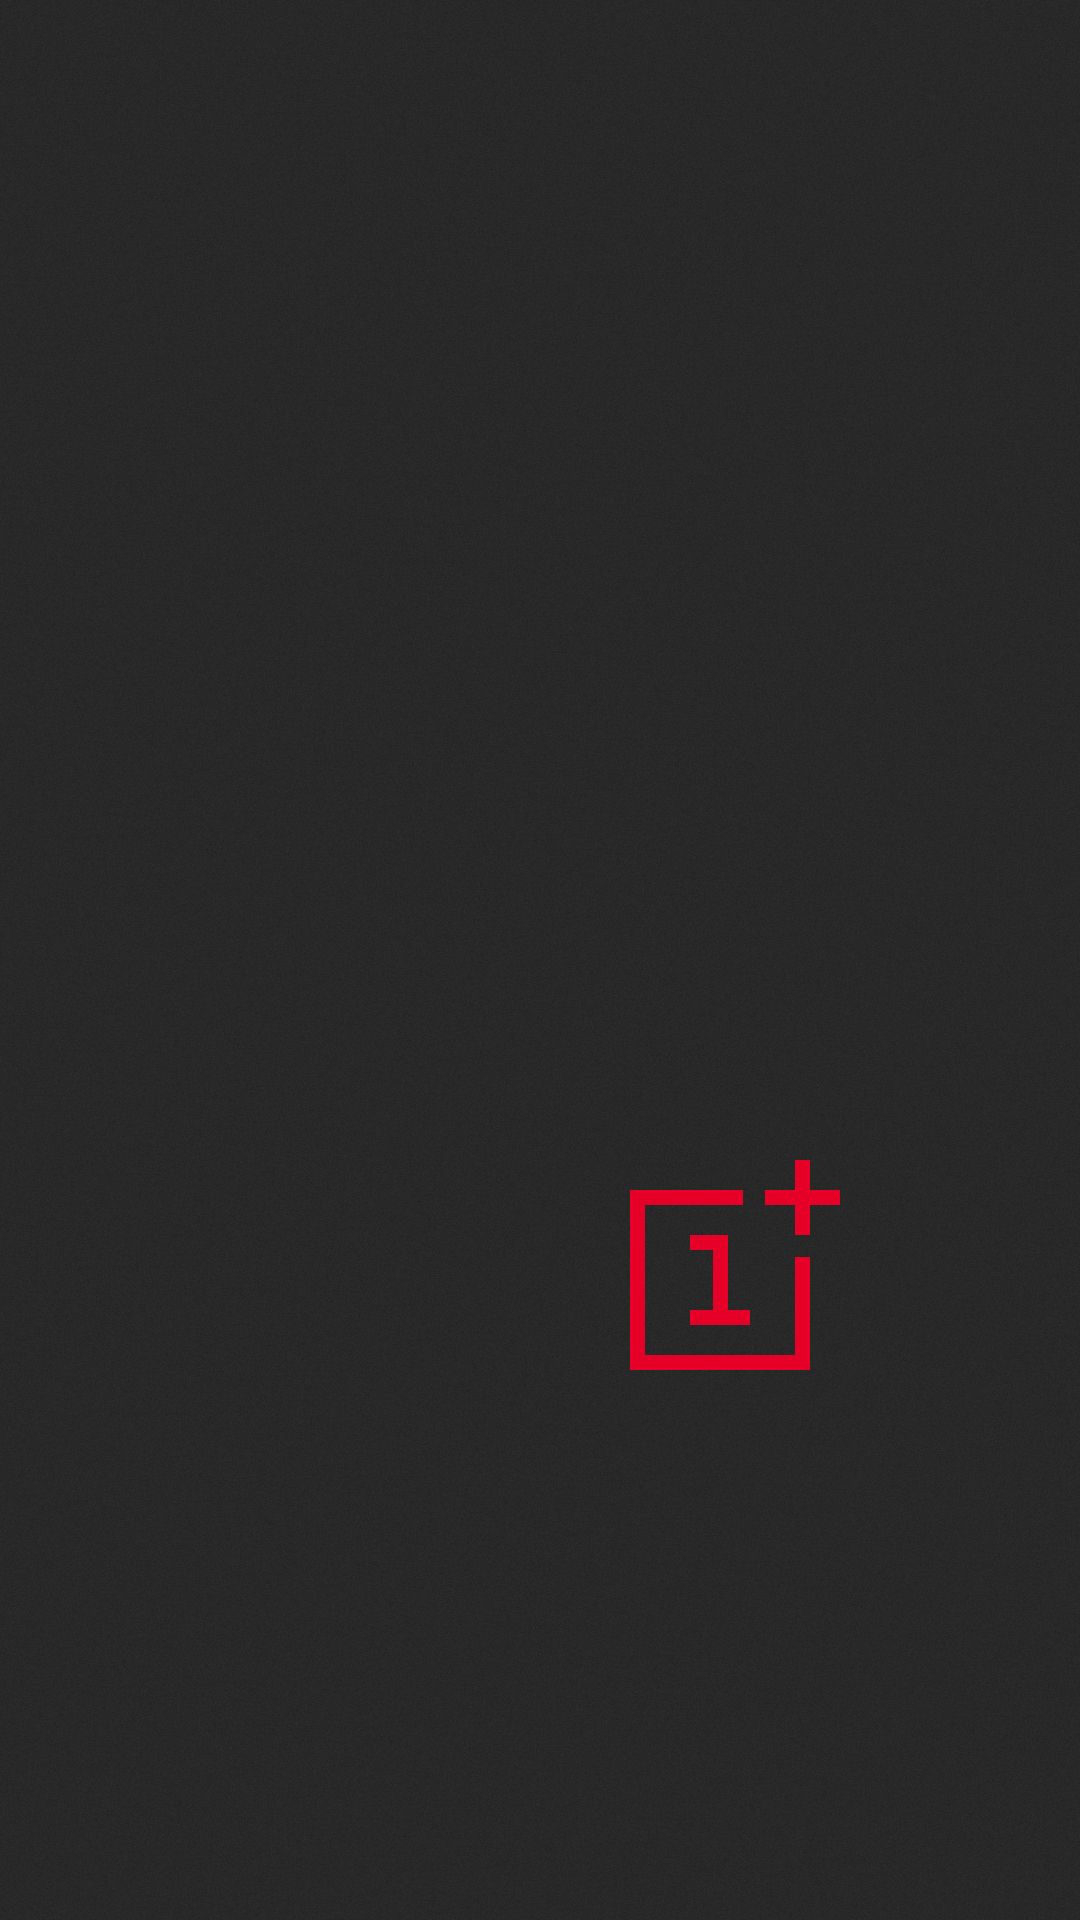 Oneplus Black Wallpapers Top Free Oneplus Black Backgrounds